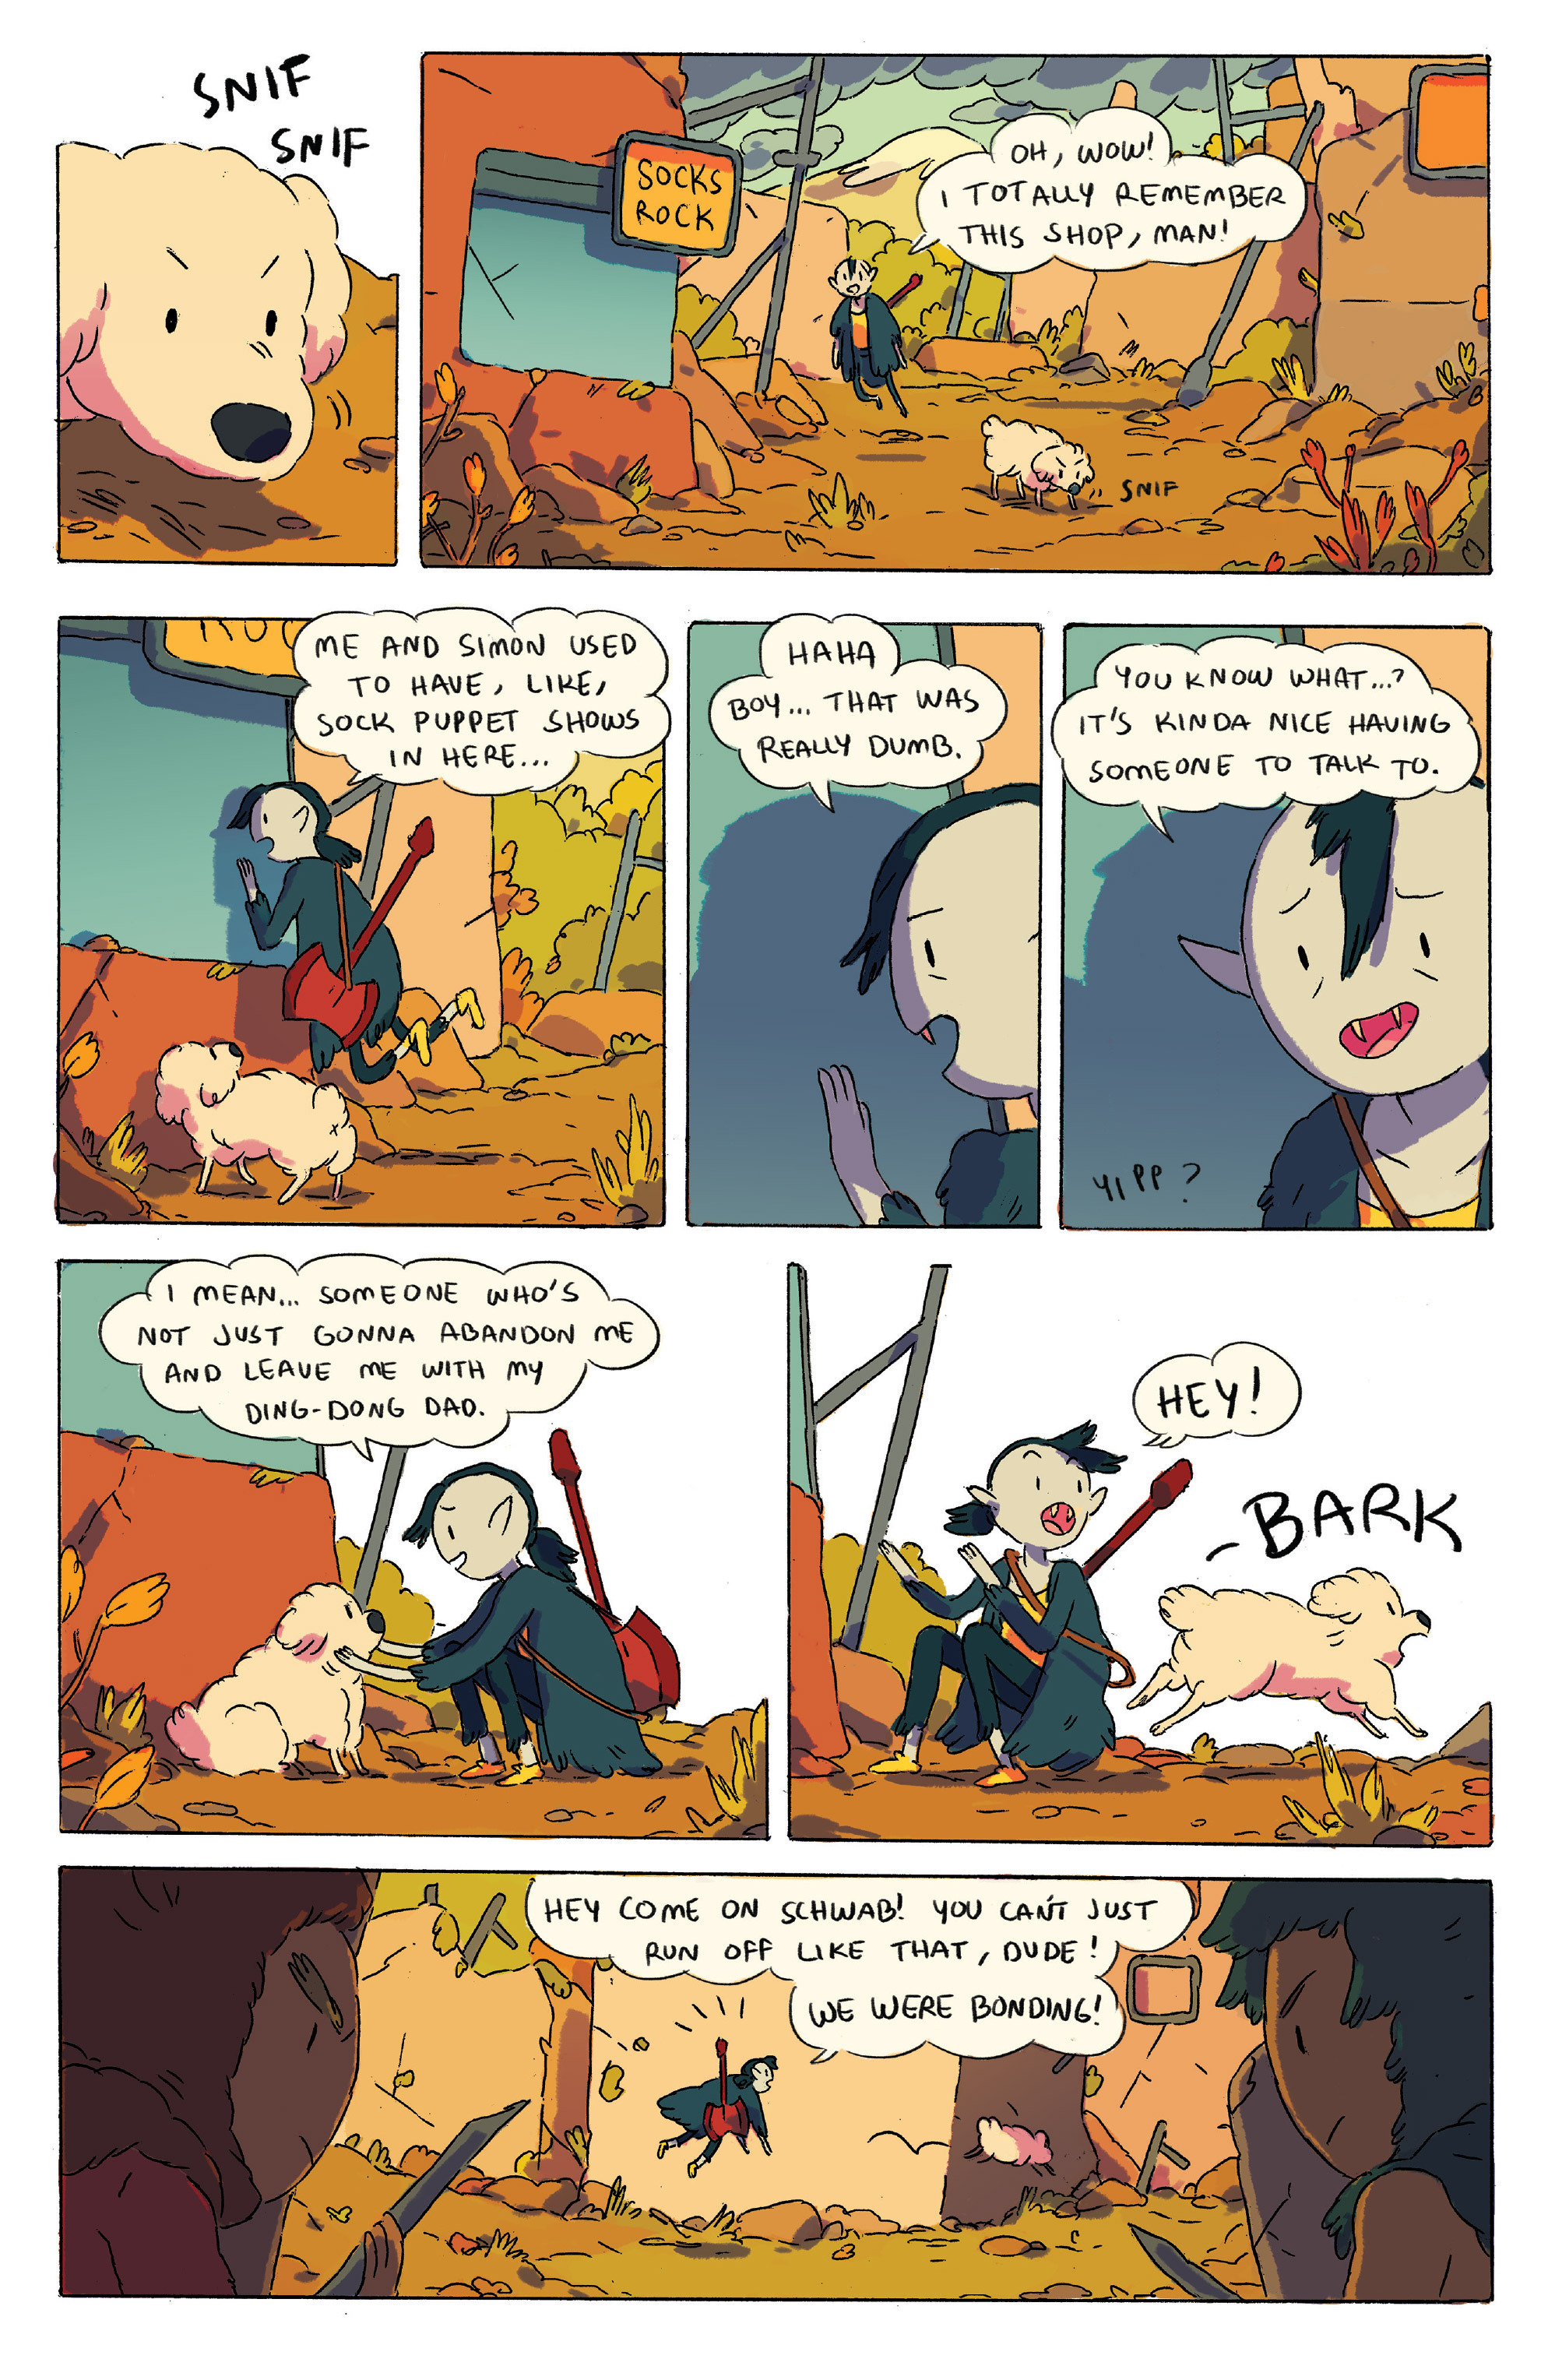 Read online Adventure Time comic -  Issue # _2015 Spoooktacular - 4